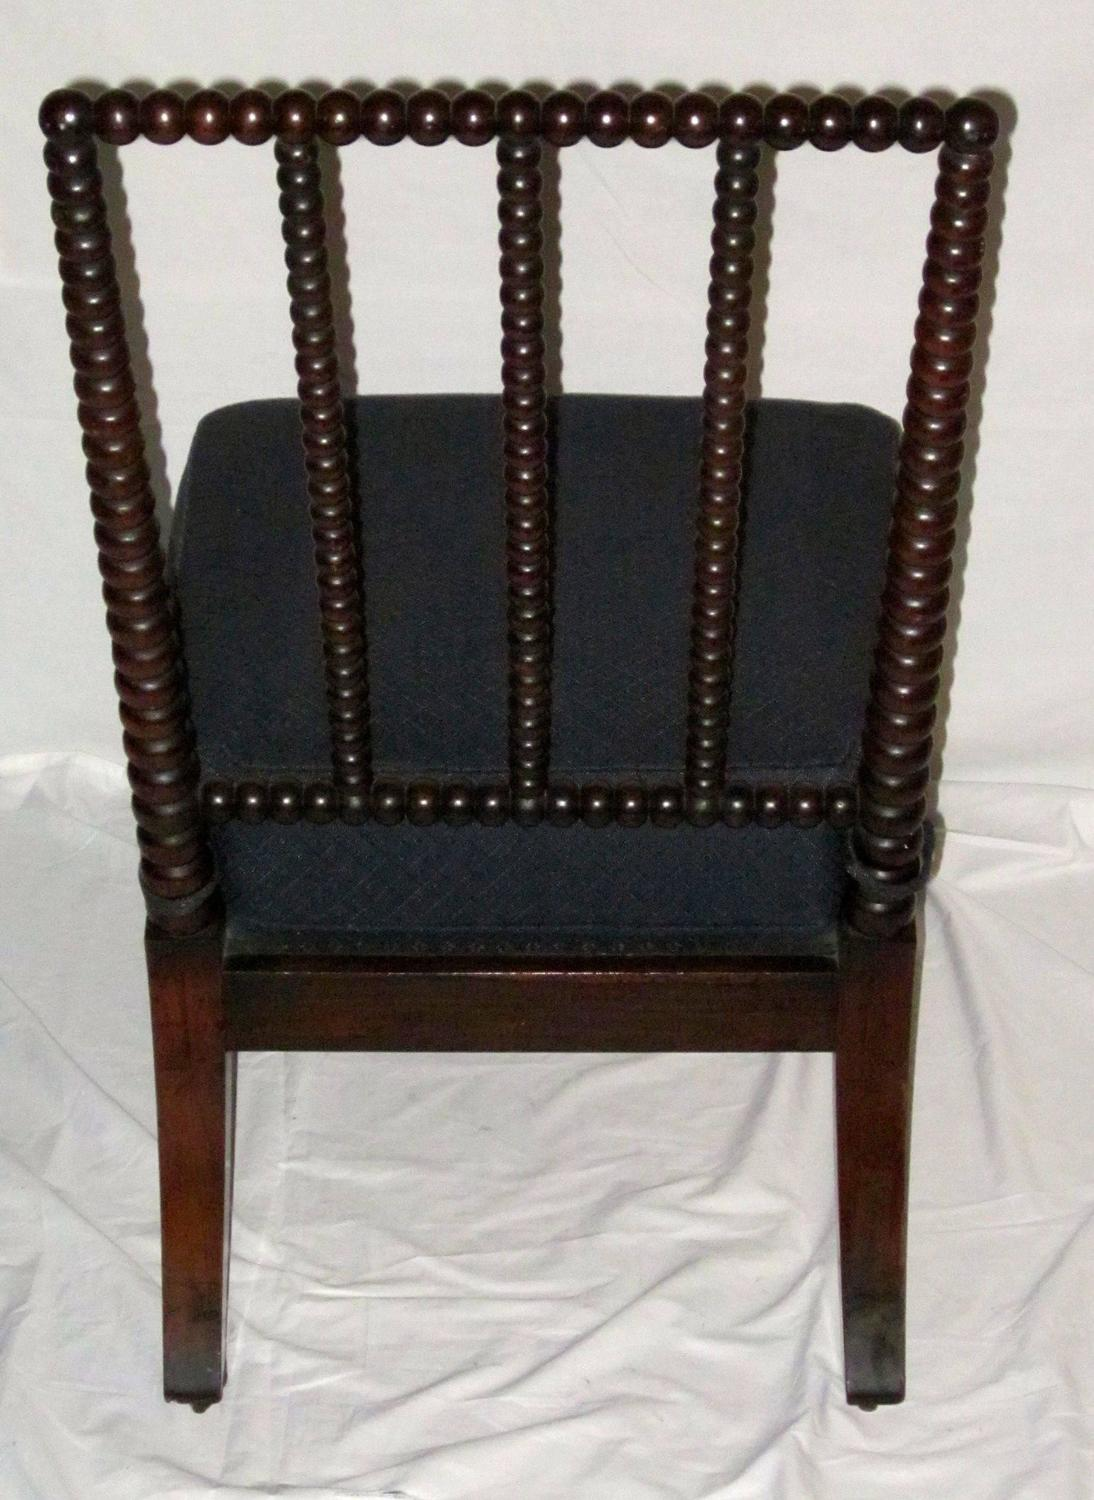 19th century armless bobbin chair upholstered seat england for sale